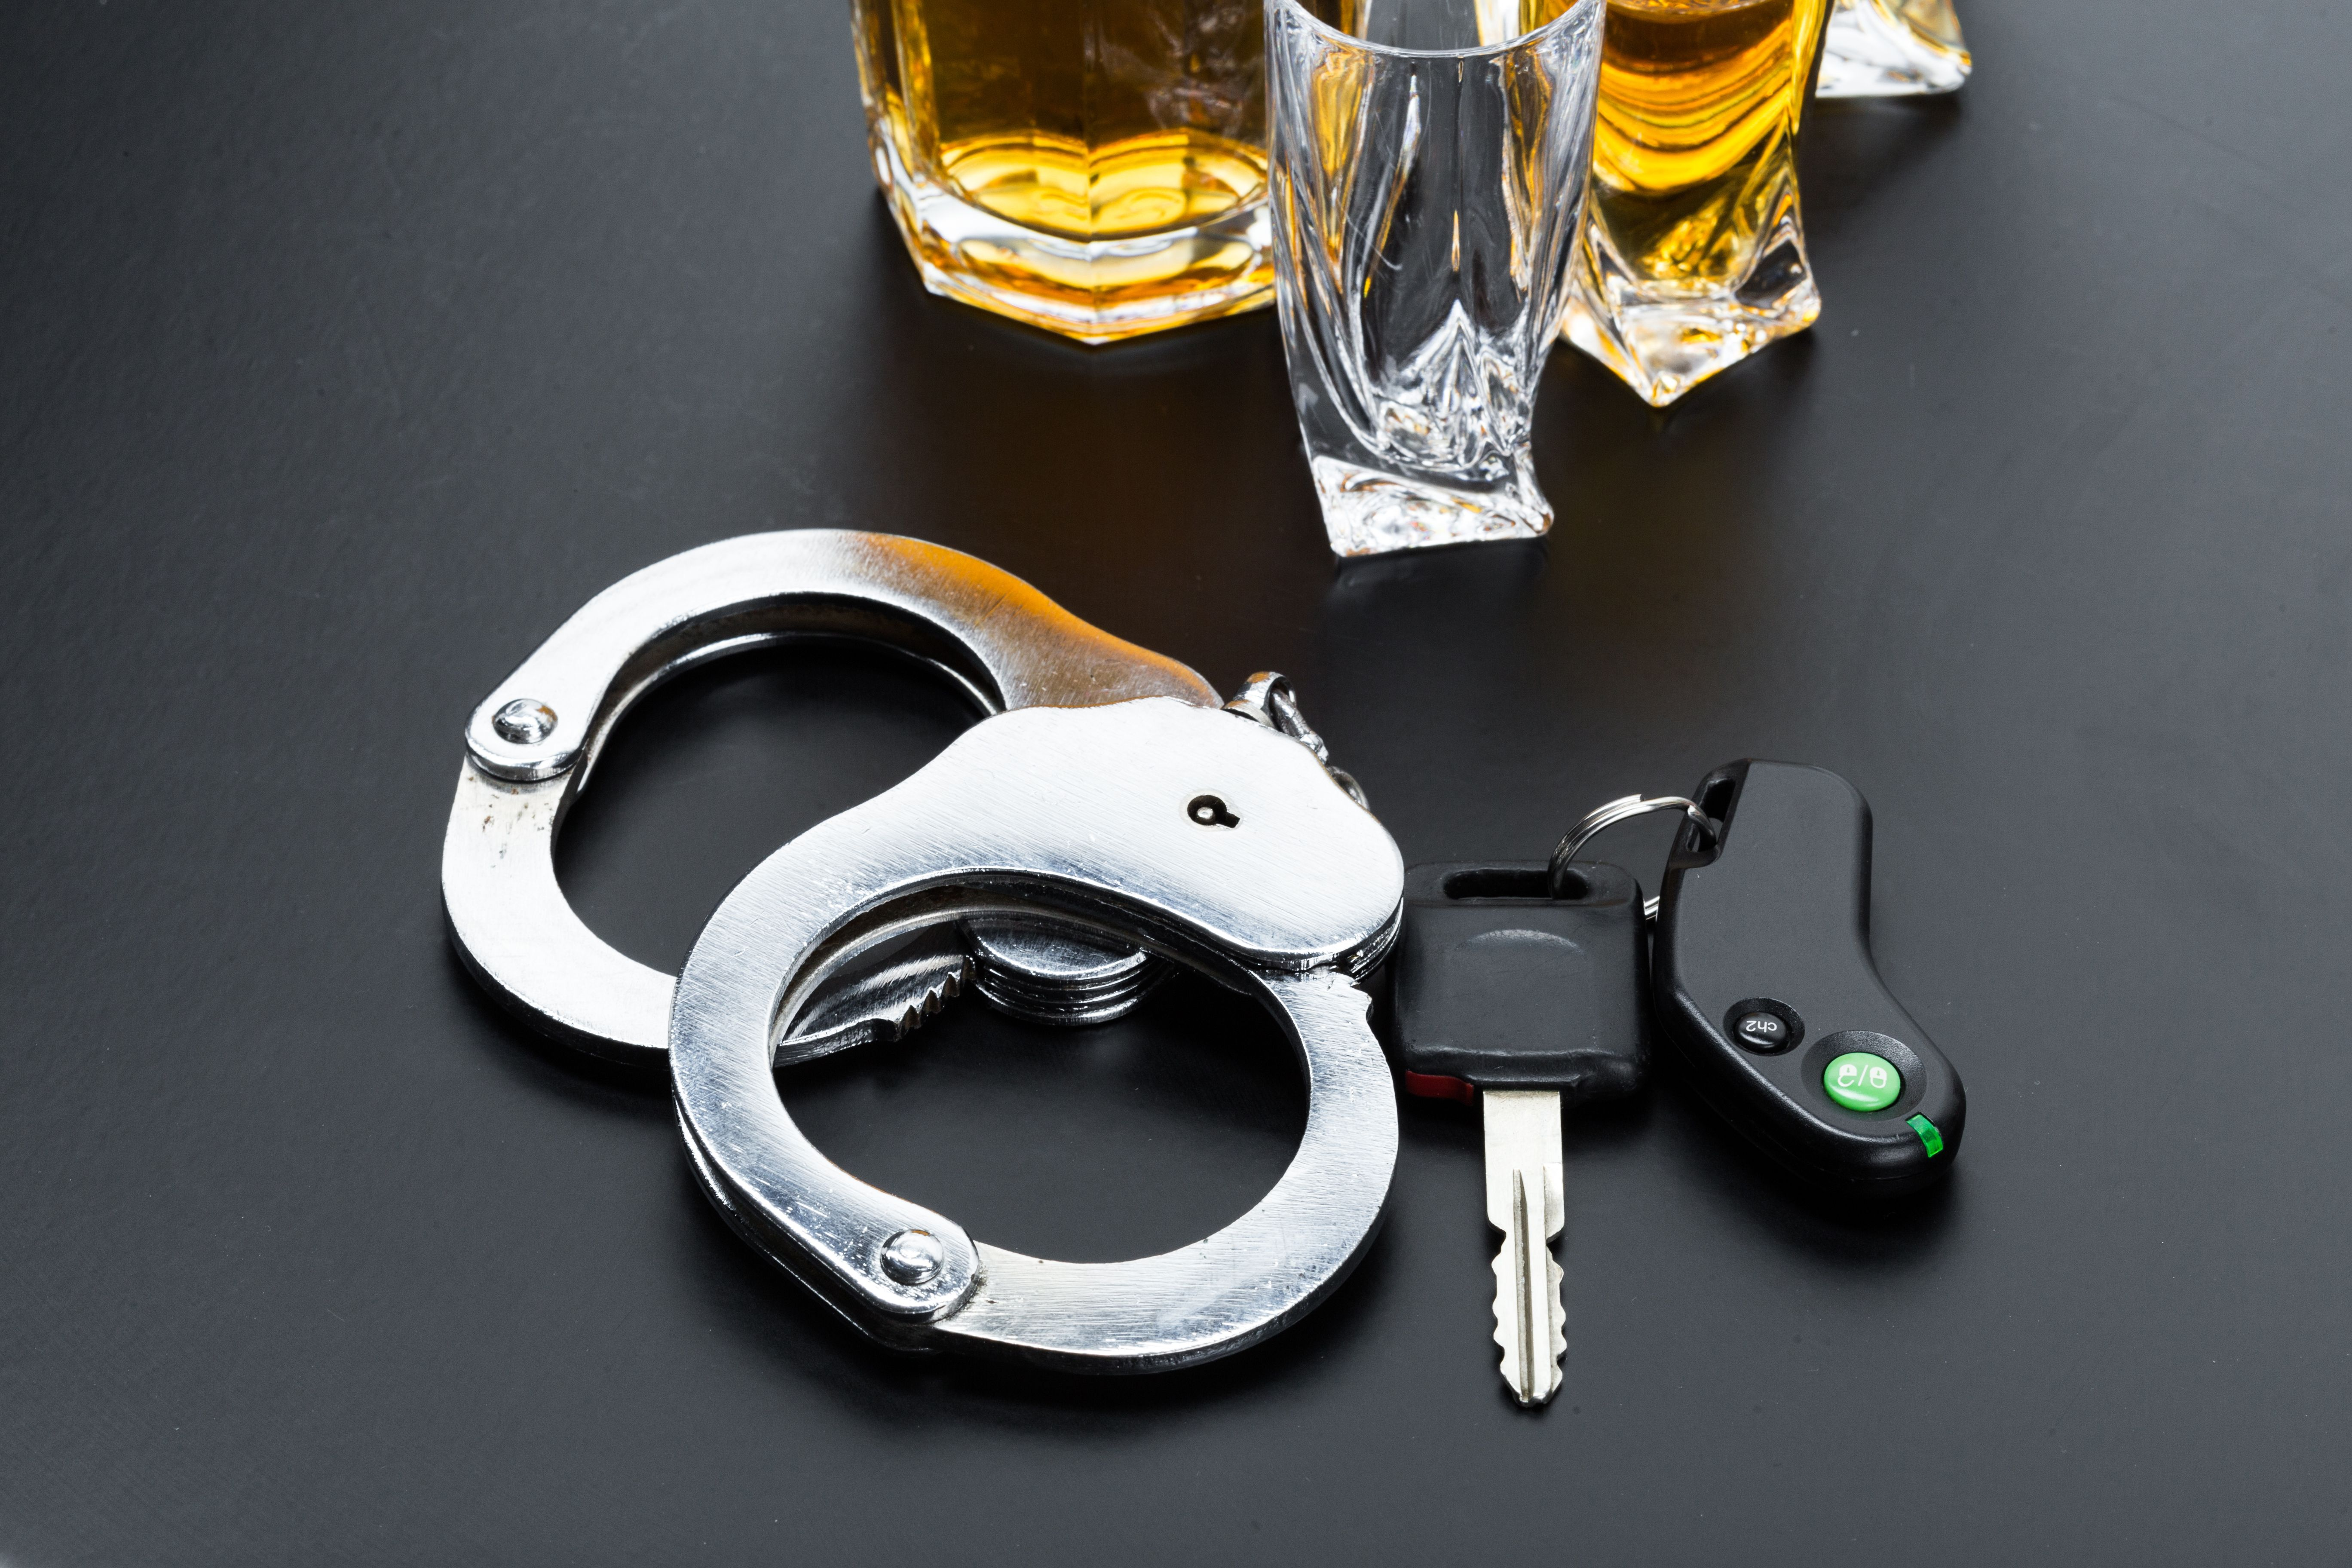 Handcuffs, car keys and alcohol - Sarasota DUI lawyer